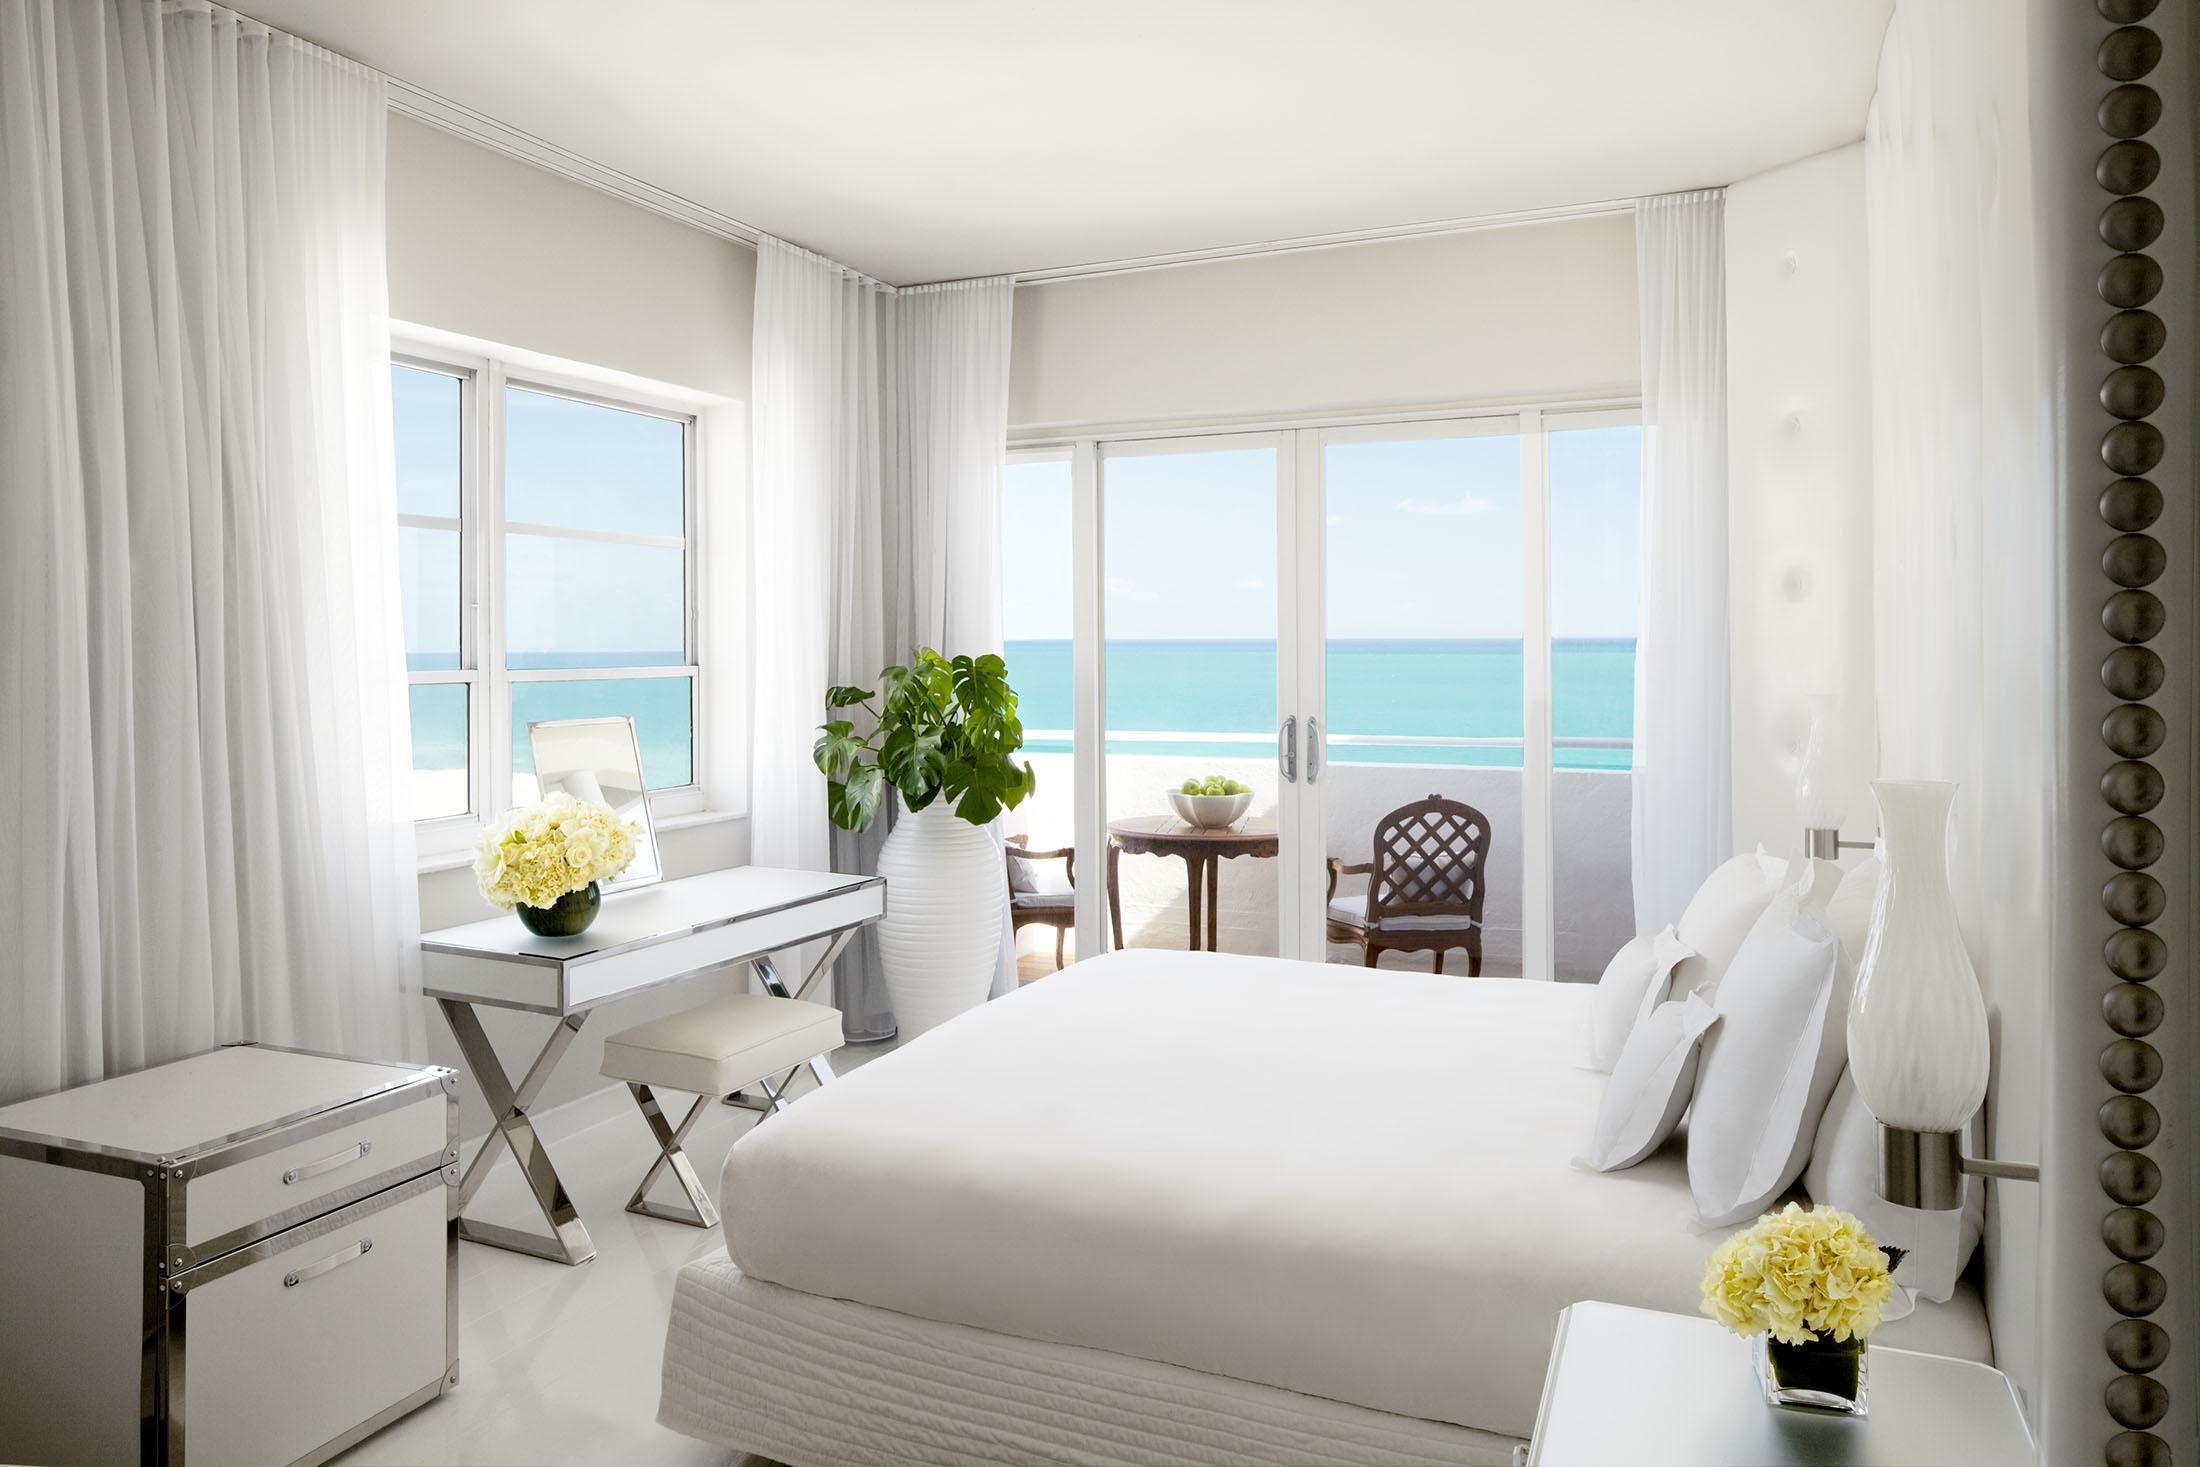 White bed in front of wall of windows with ocean view